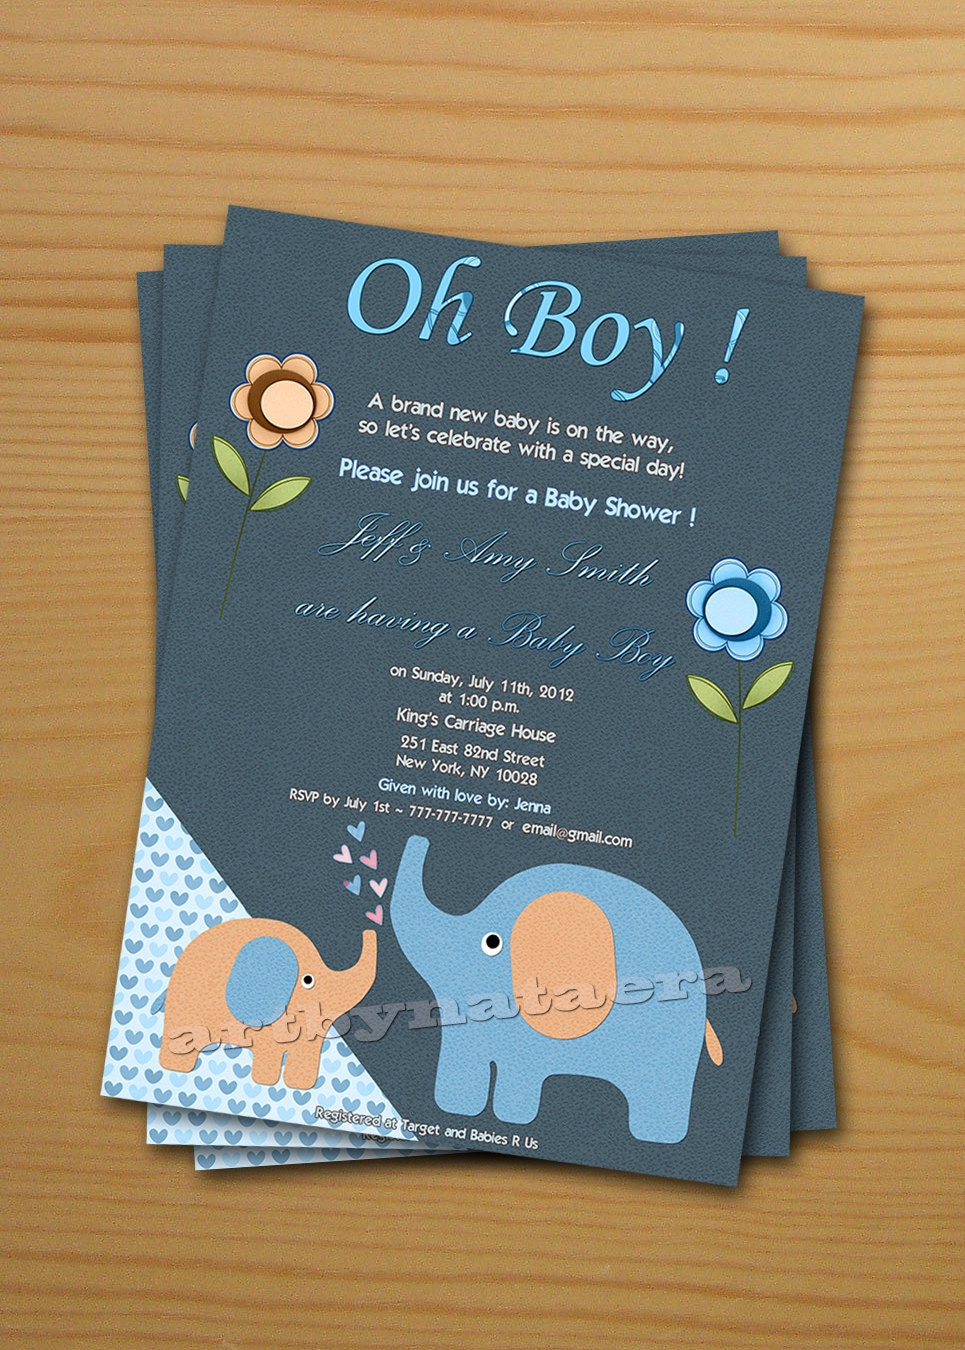 Create Your Own Invitation Card is nice invitations design